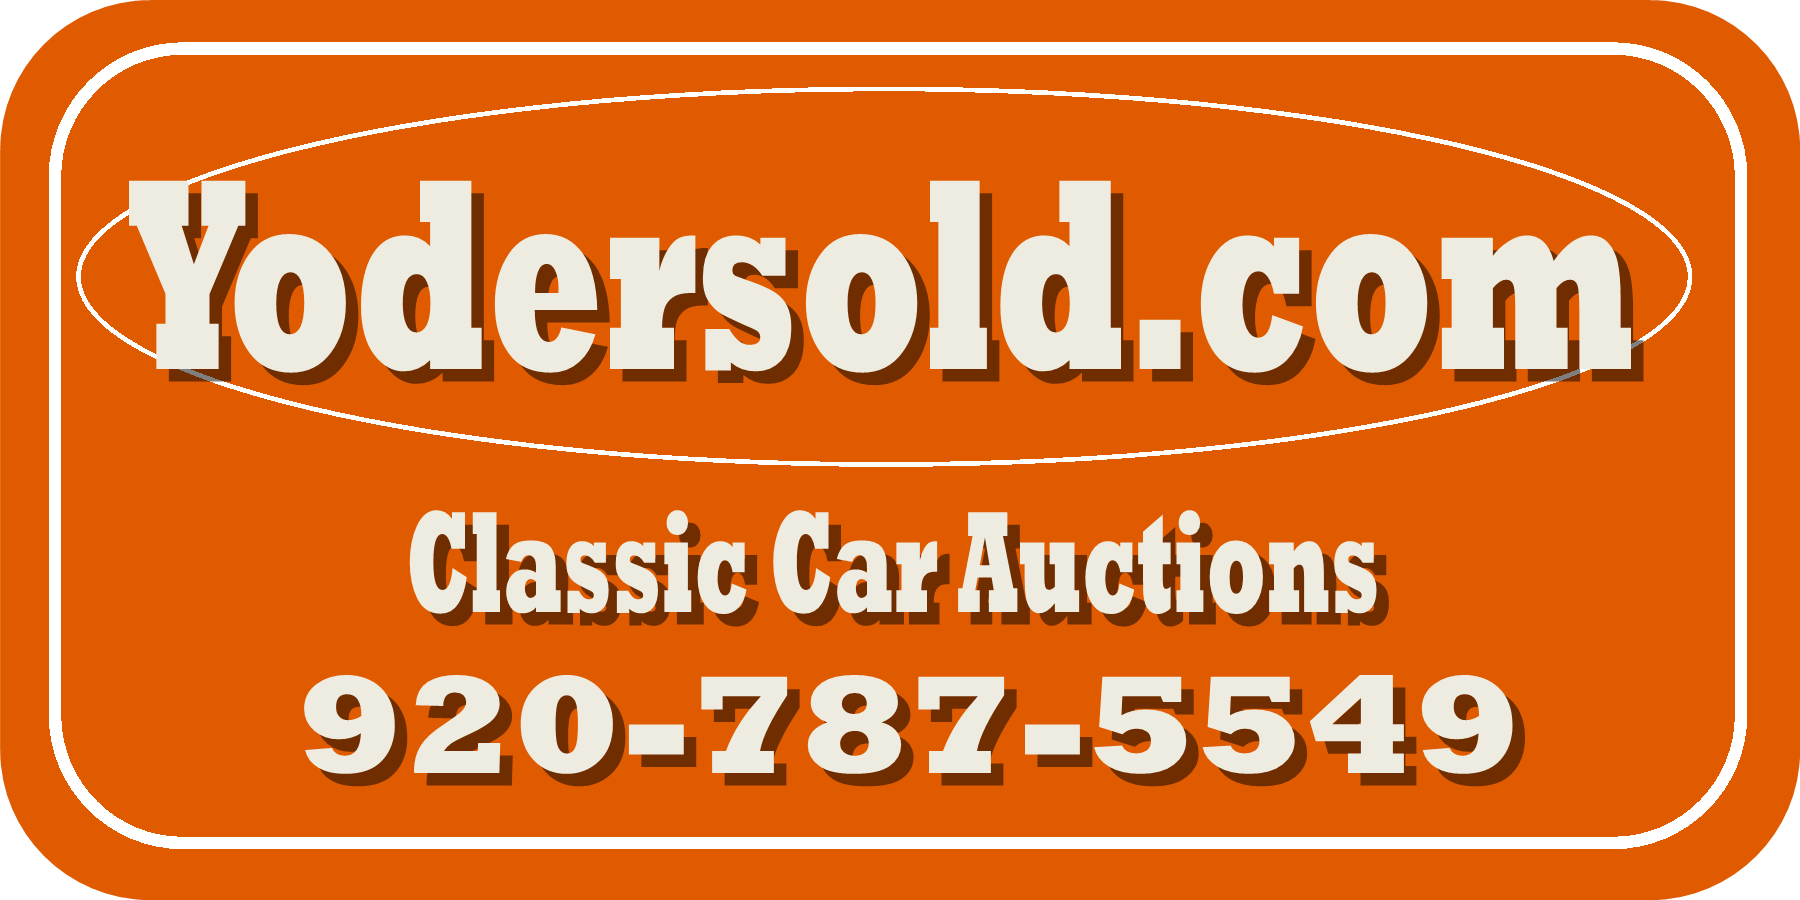 Classic Car Auctions – Yoder Sold